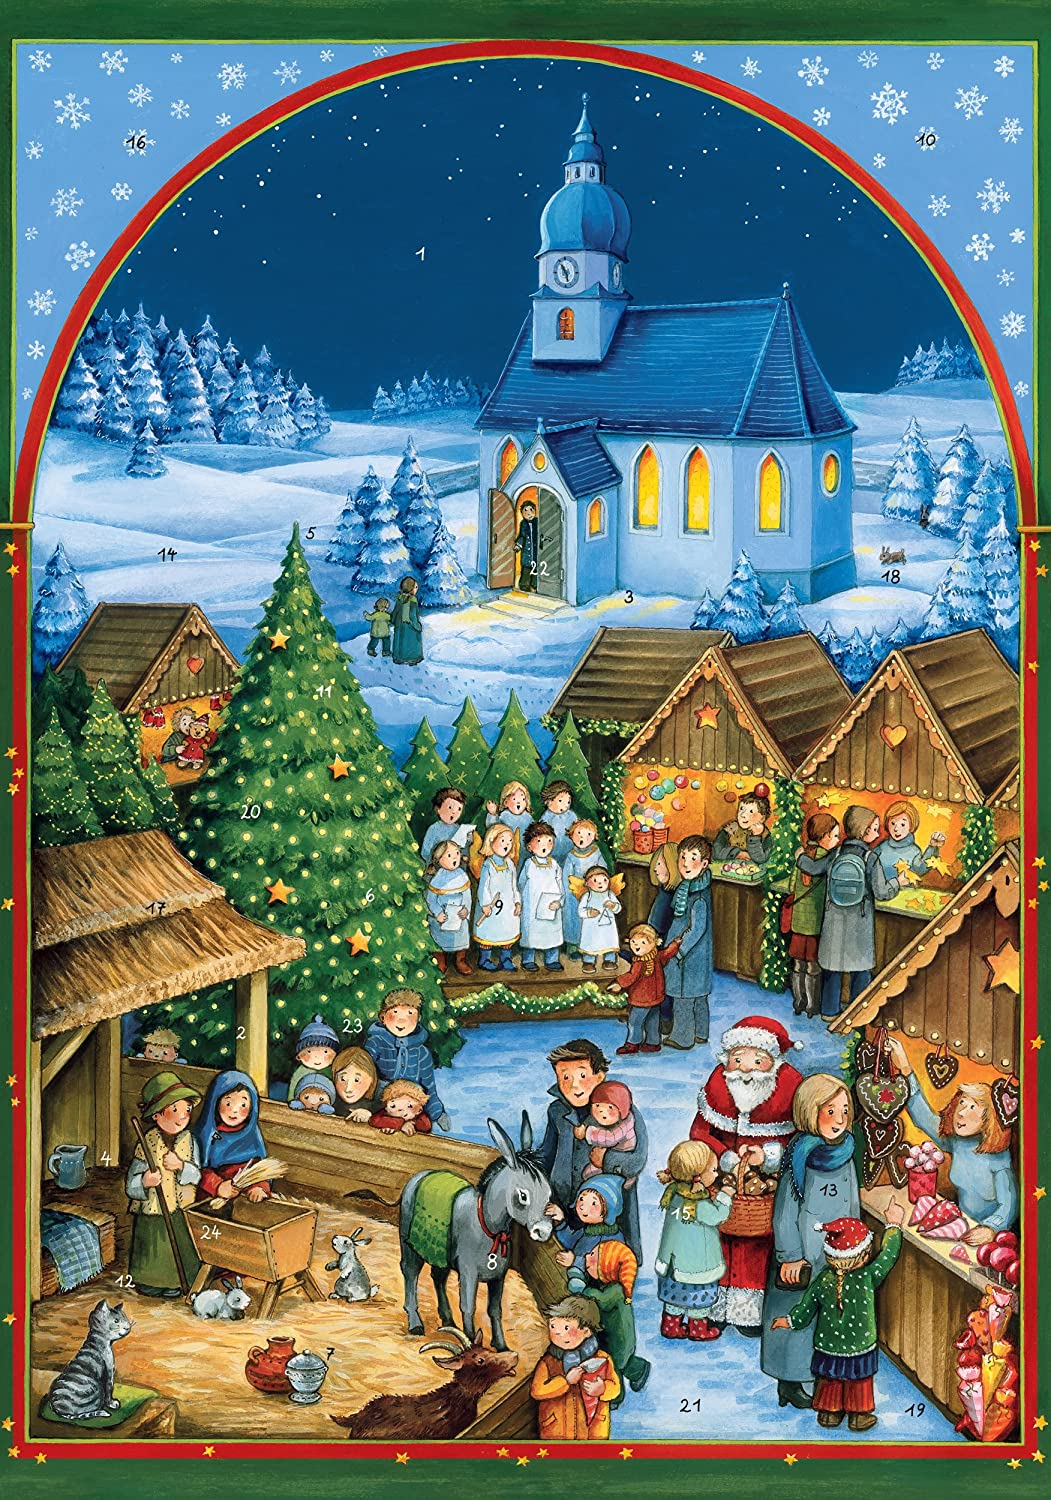 Christmas Village In Germany.Coppenrath Unique Traditional Advent Christmas Calendar Premium Made In Germany Quaint German Christmas Village Market